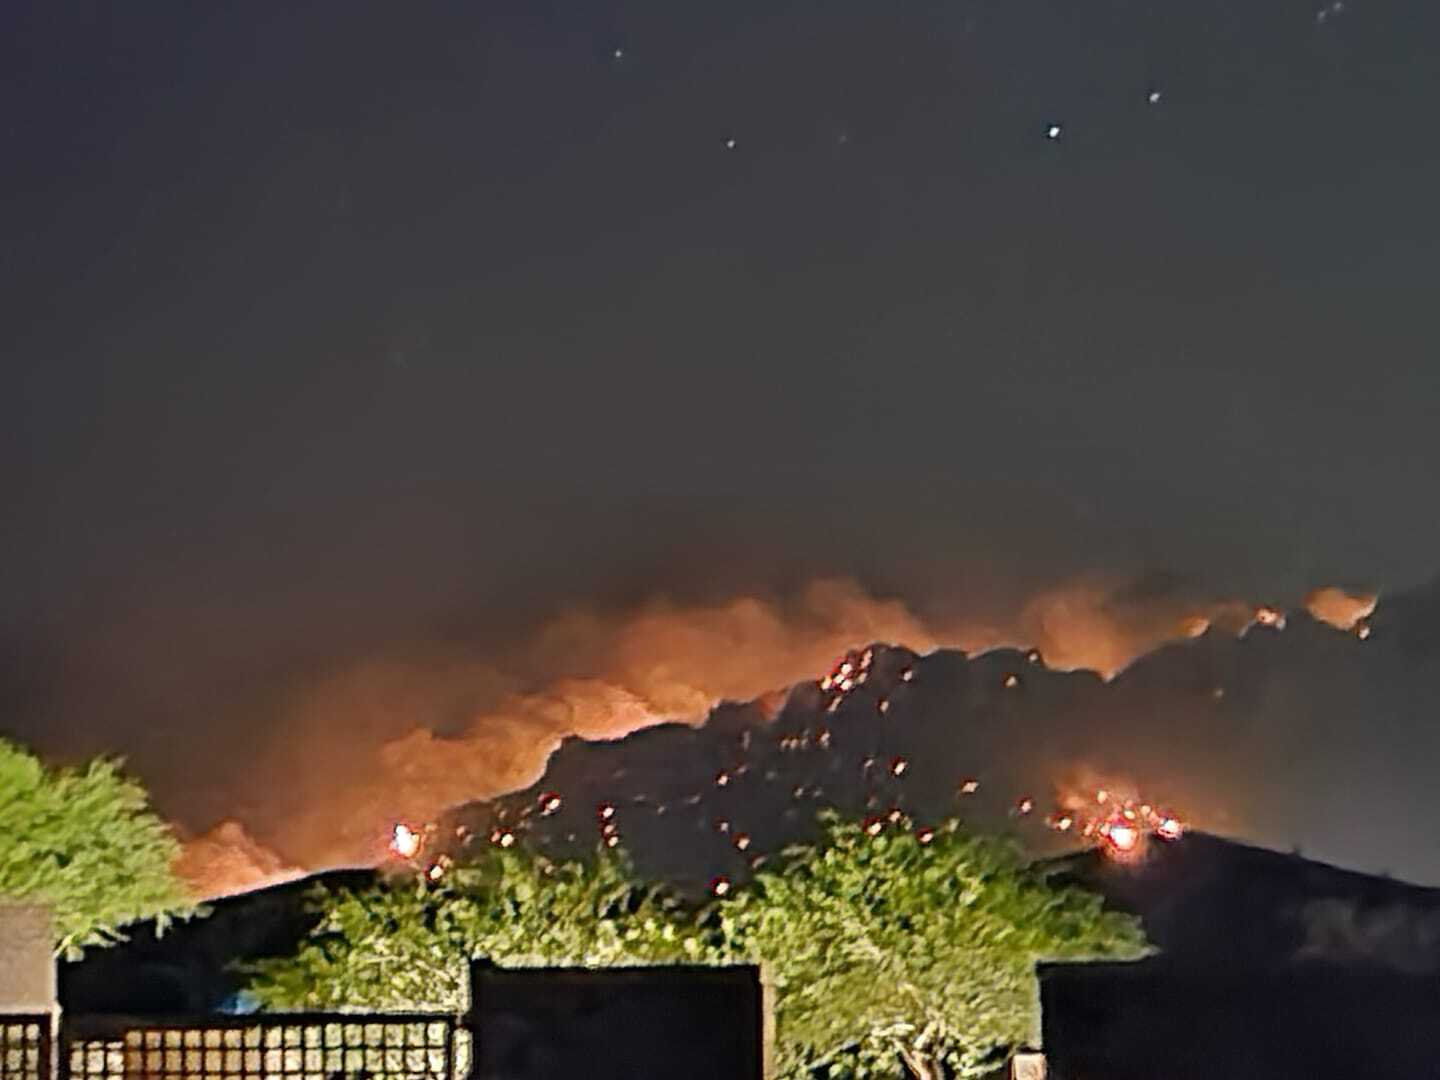 The Bighorn Fire in the Catalina Mountains as seen from the Rancho Vistoso area of Oro Valley